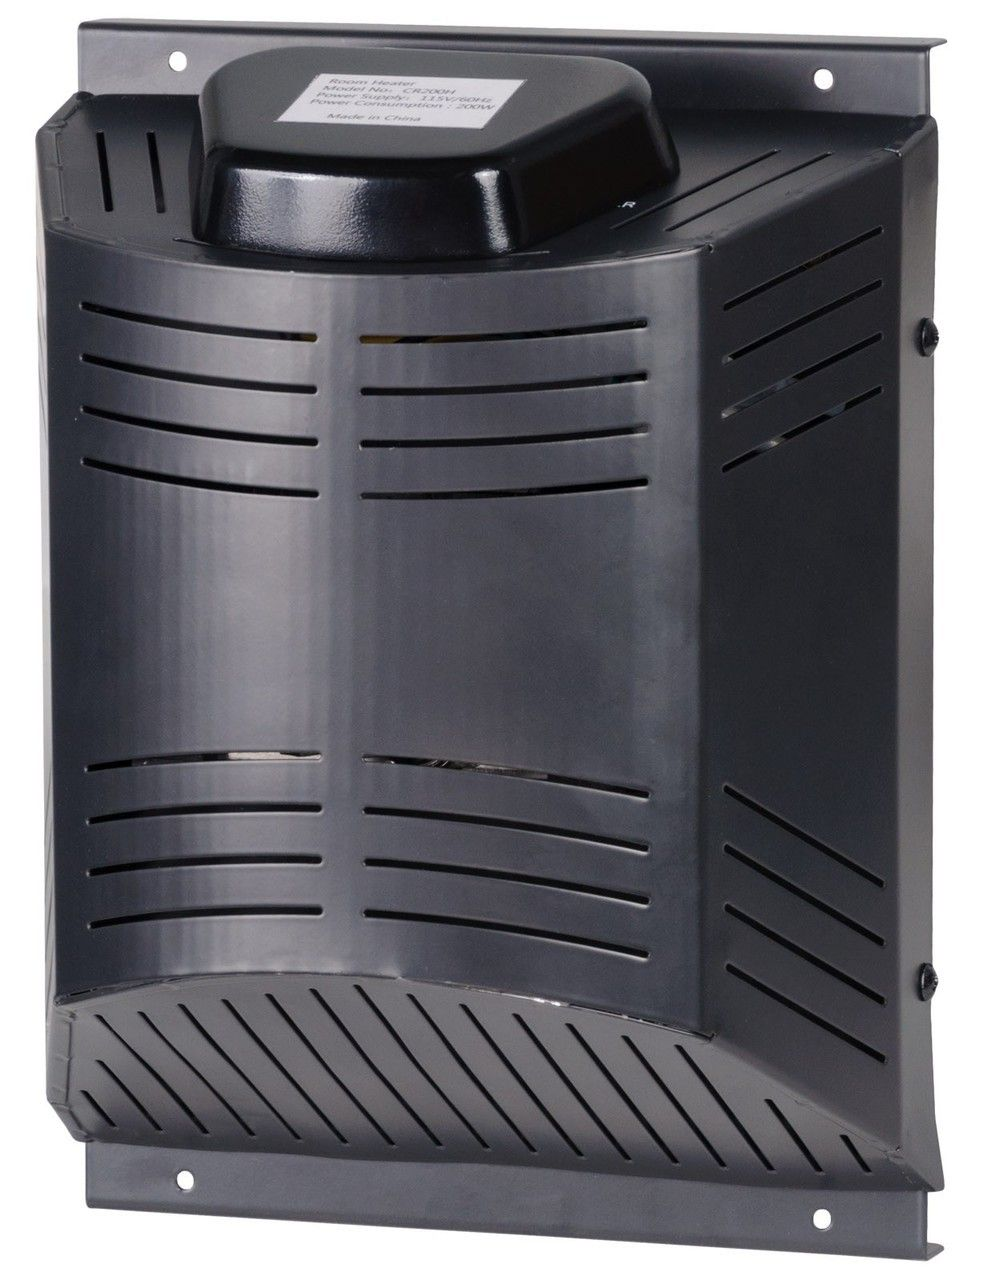 Climate Right Dog Kennel Heater With Fan Out Of Stock Dog House Heater House Heater Portable Heater